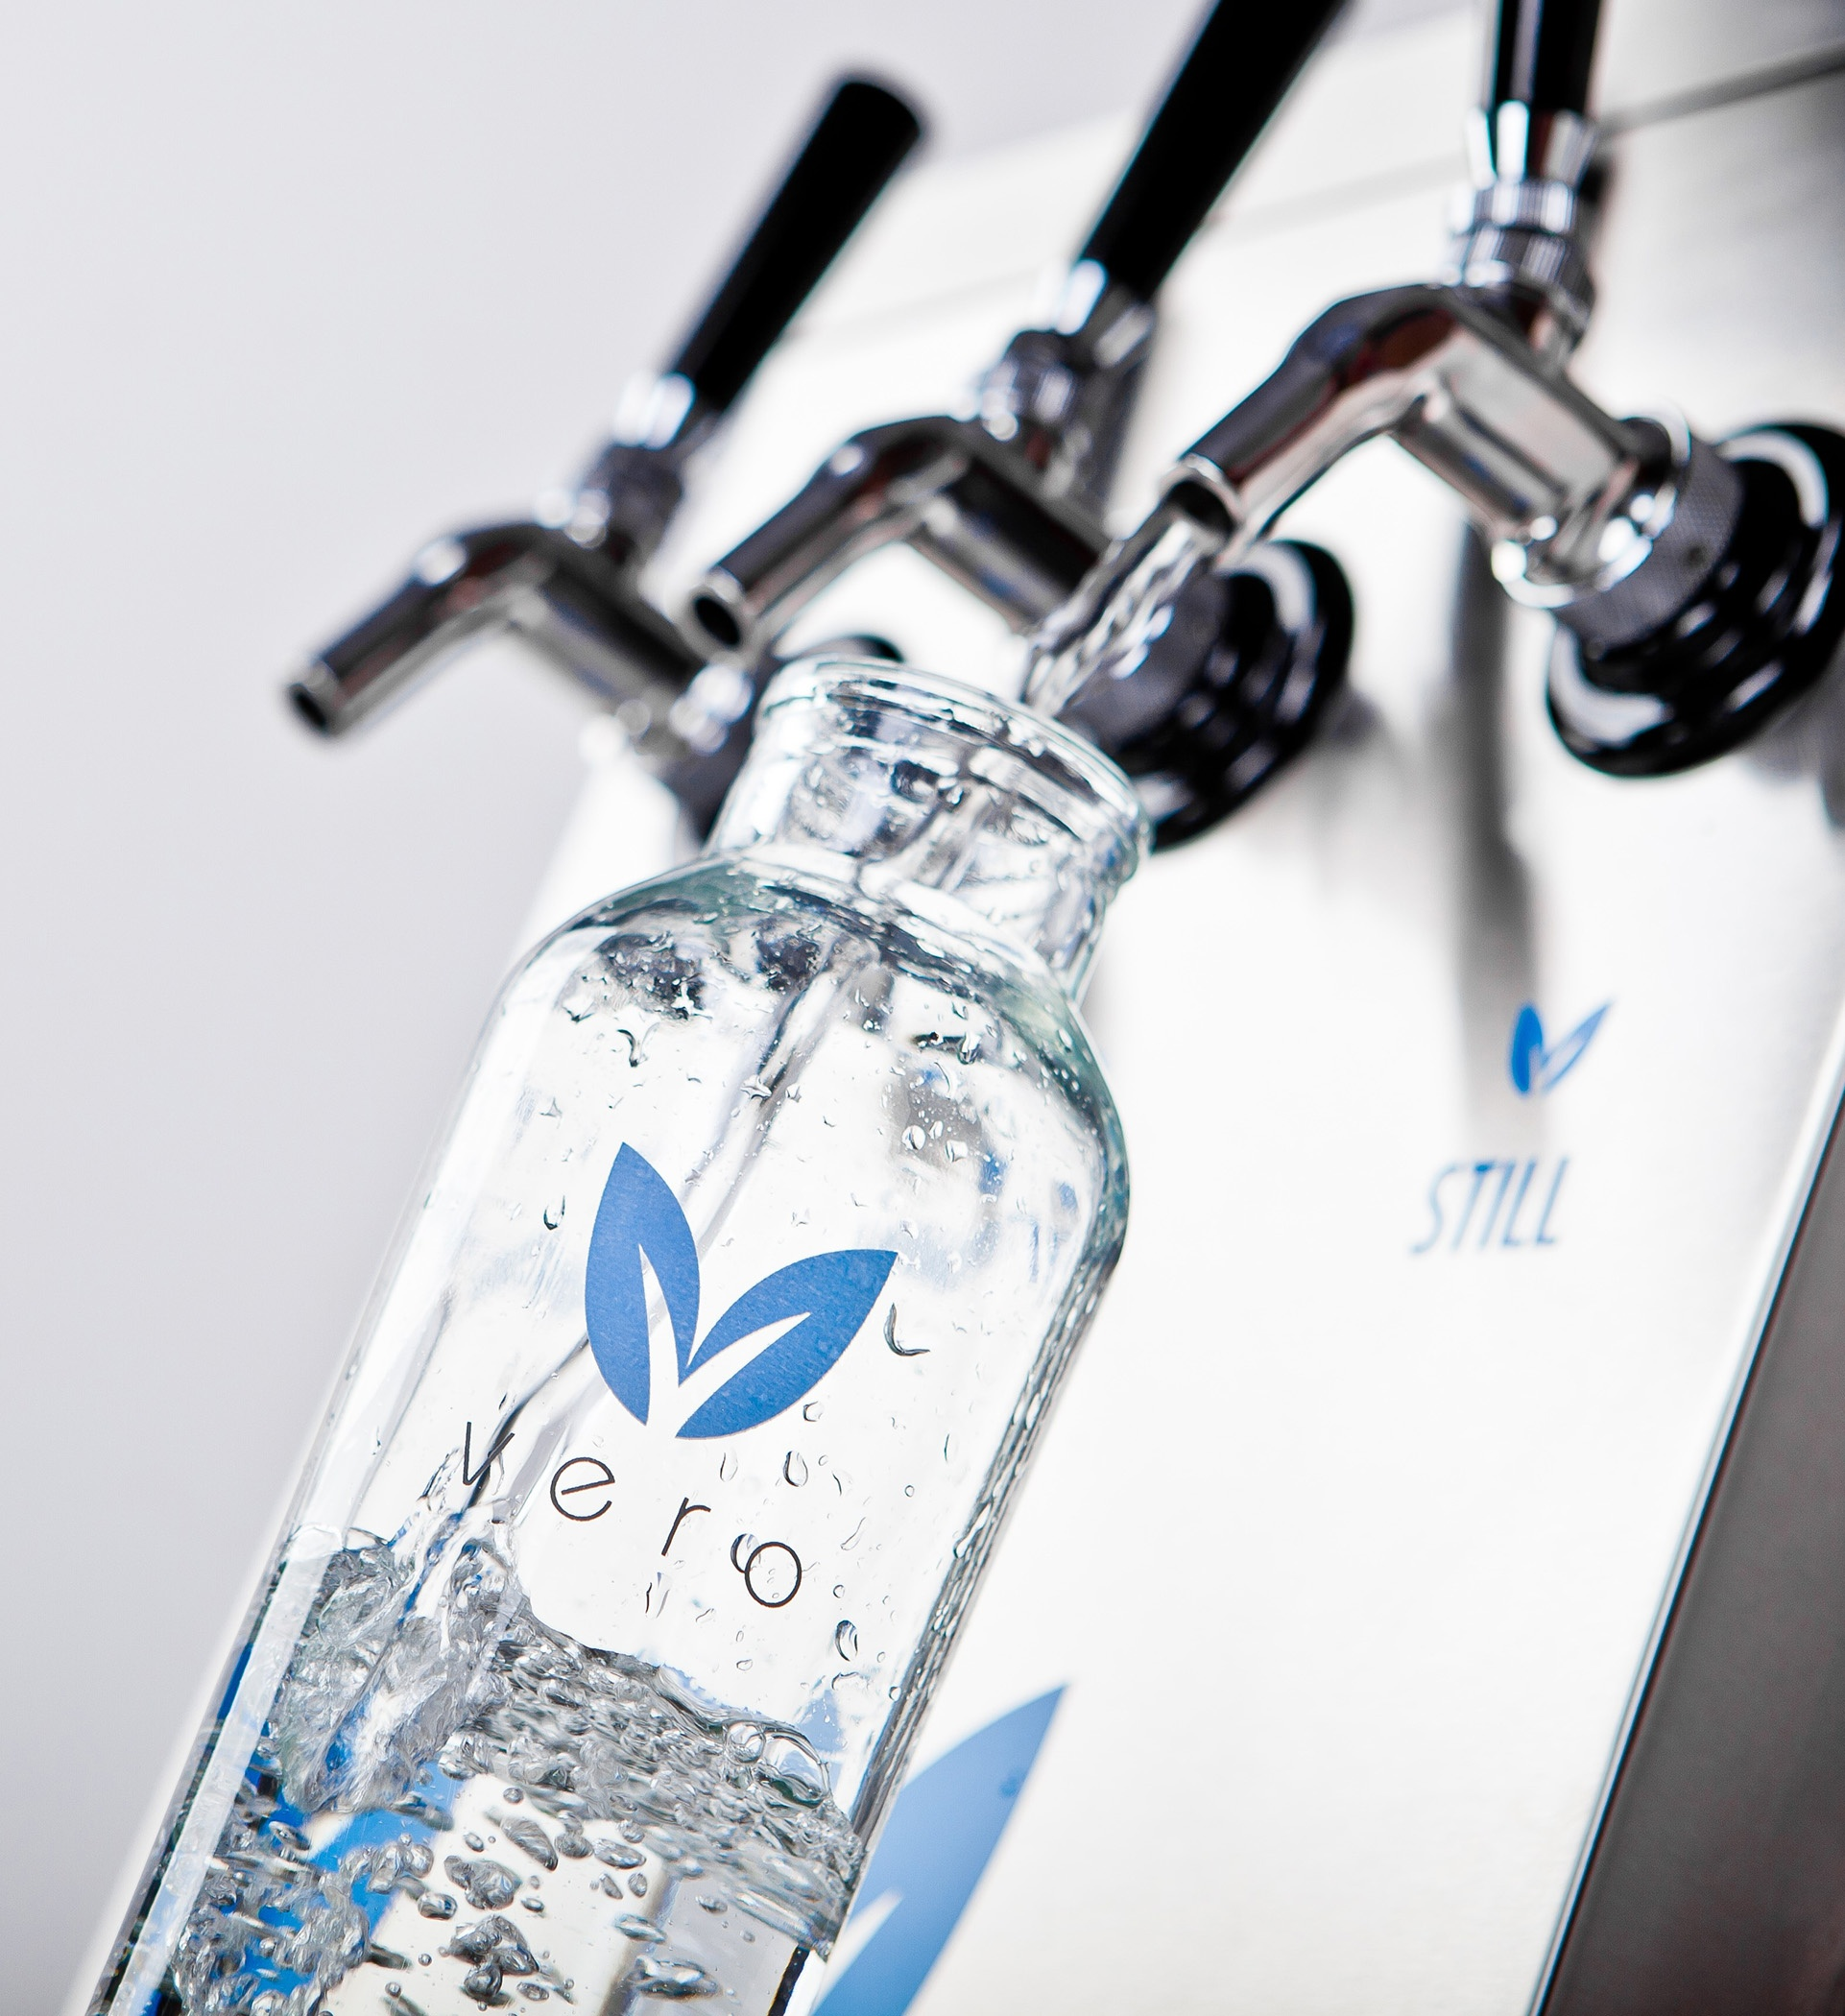 Introducing Vero The Art of Authentic, Pure Water